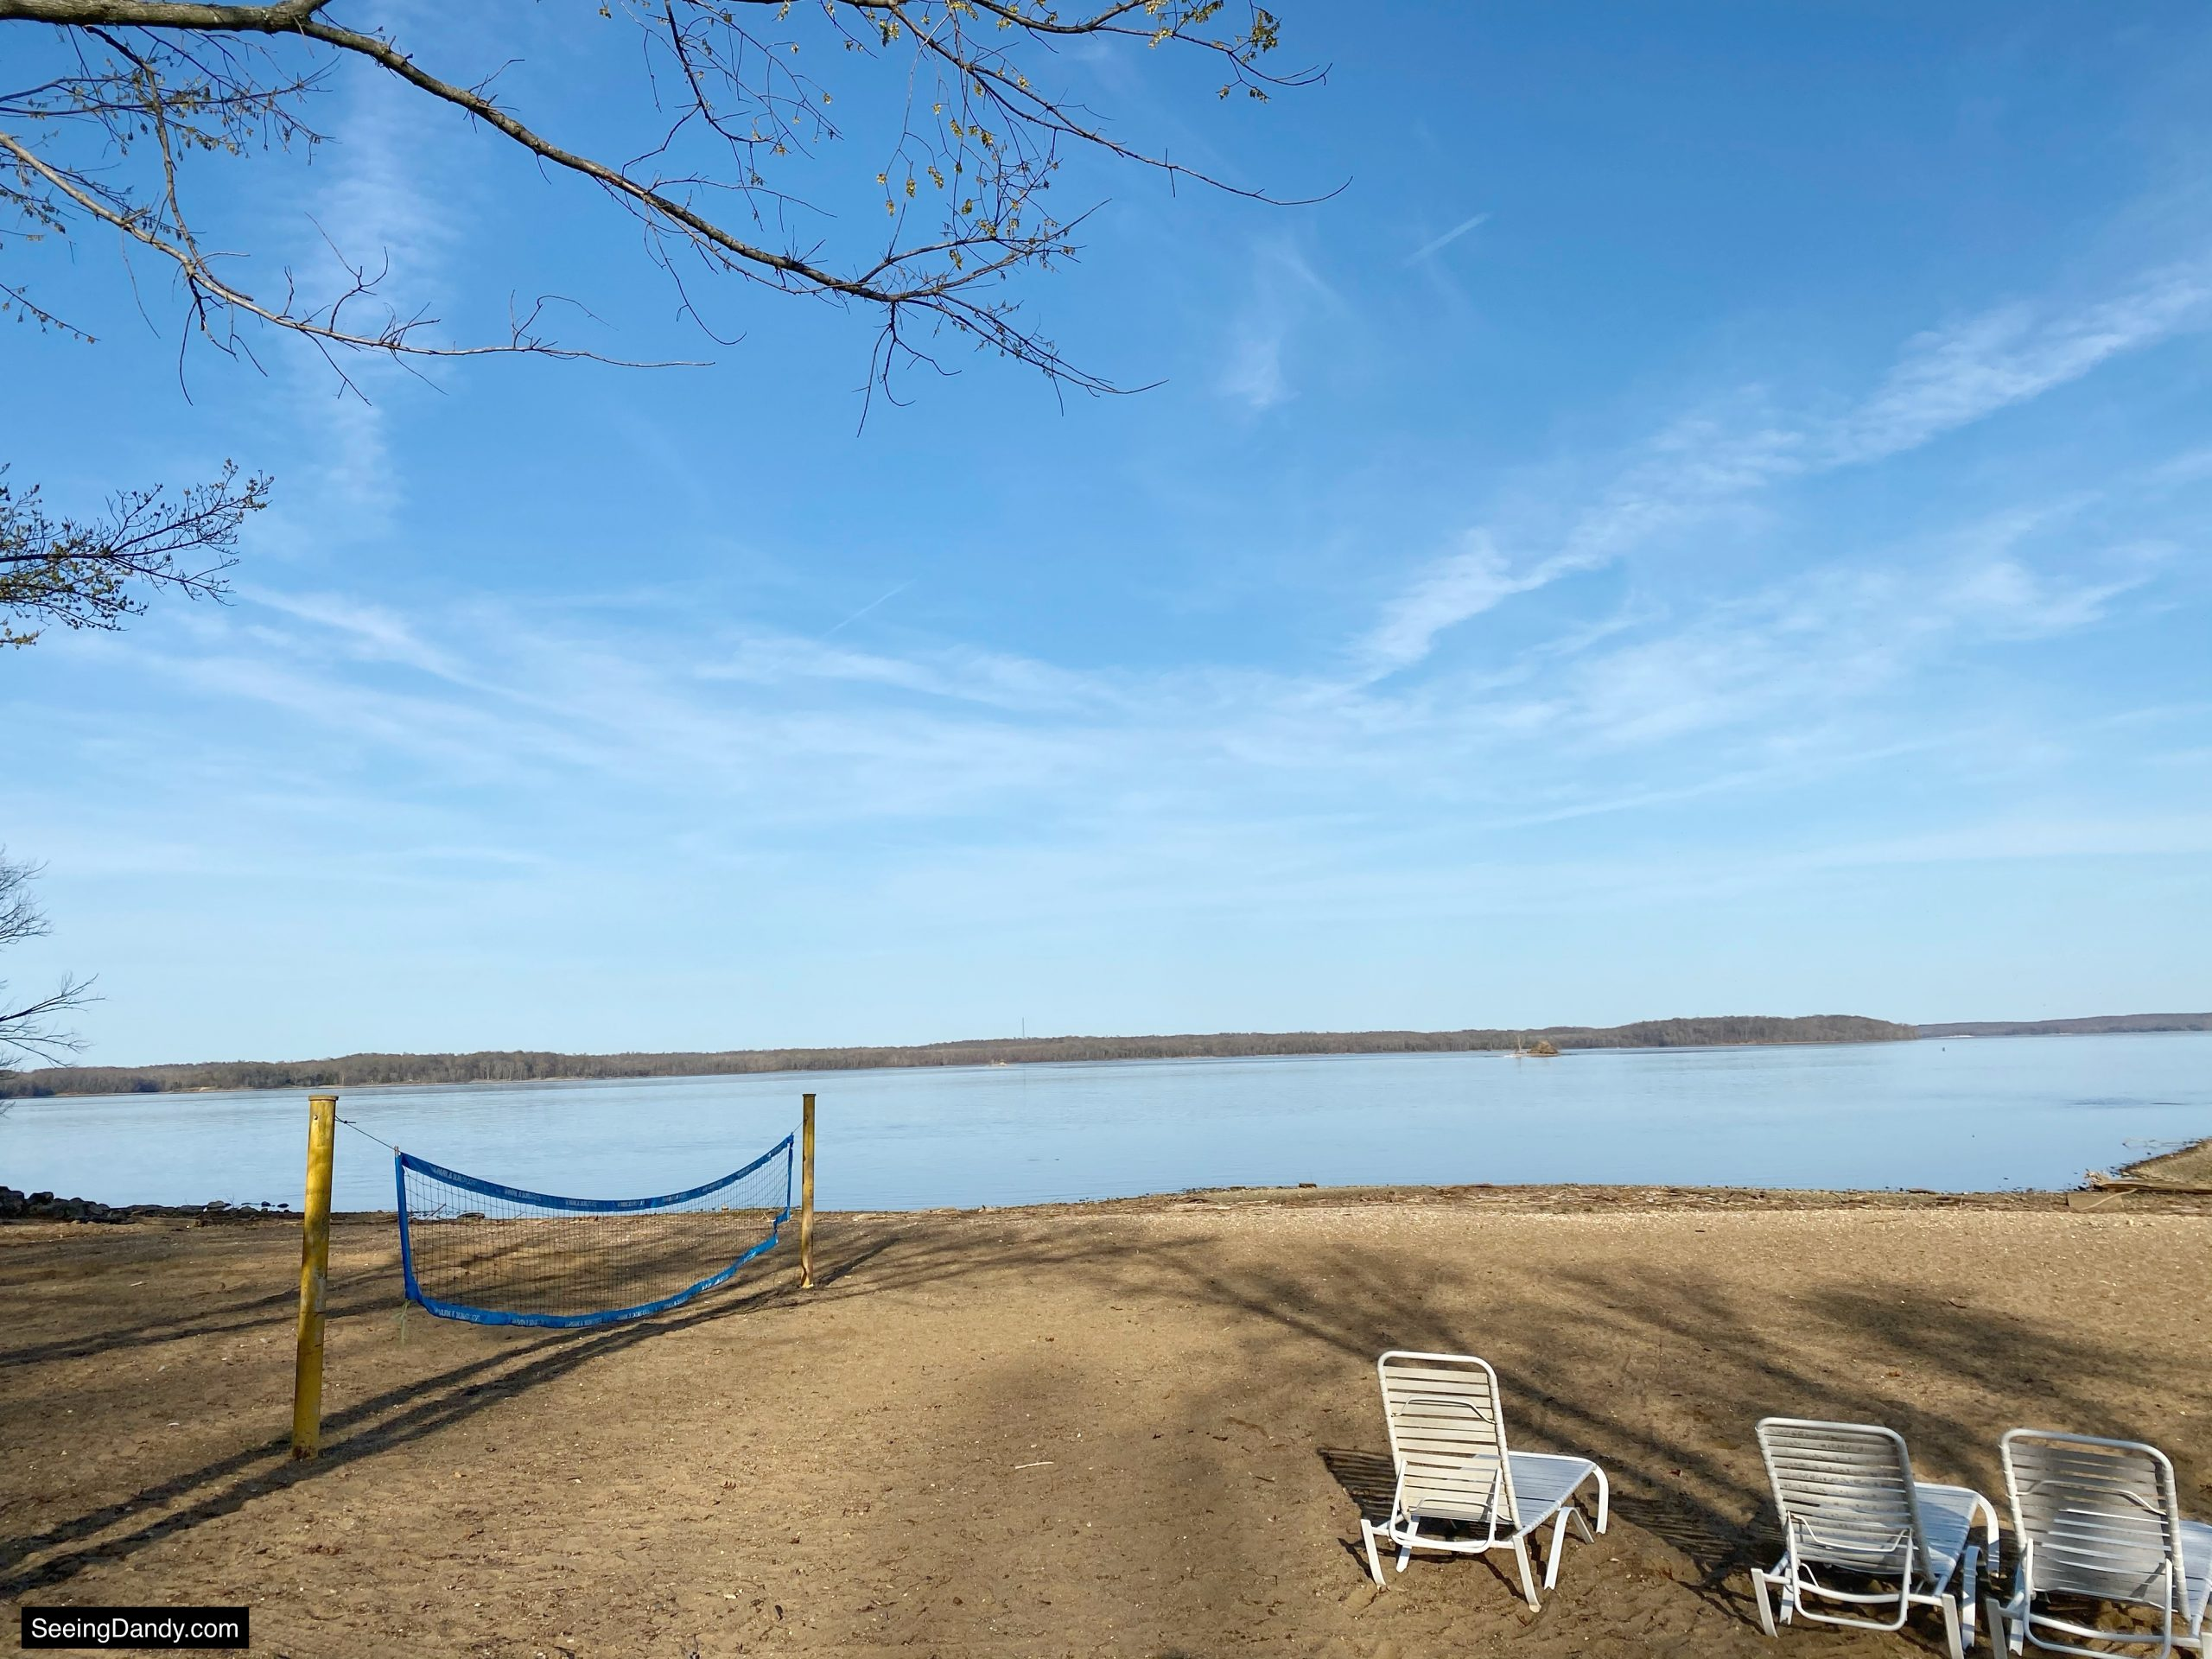 land between the lakes beach, lake barkley beach, sand volleyball, white beach chairs, kentucky lake, green turtle bay